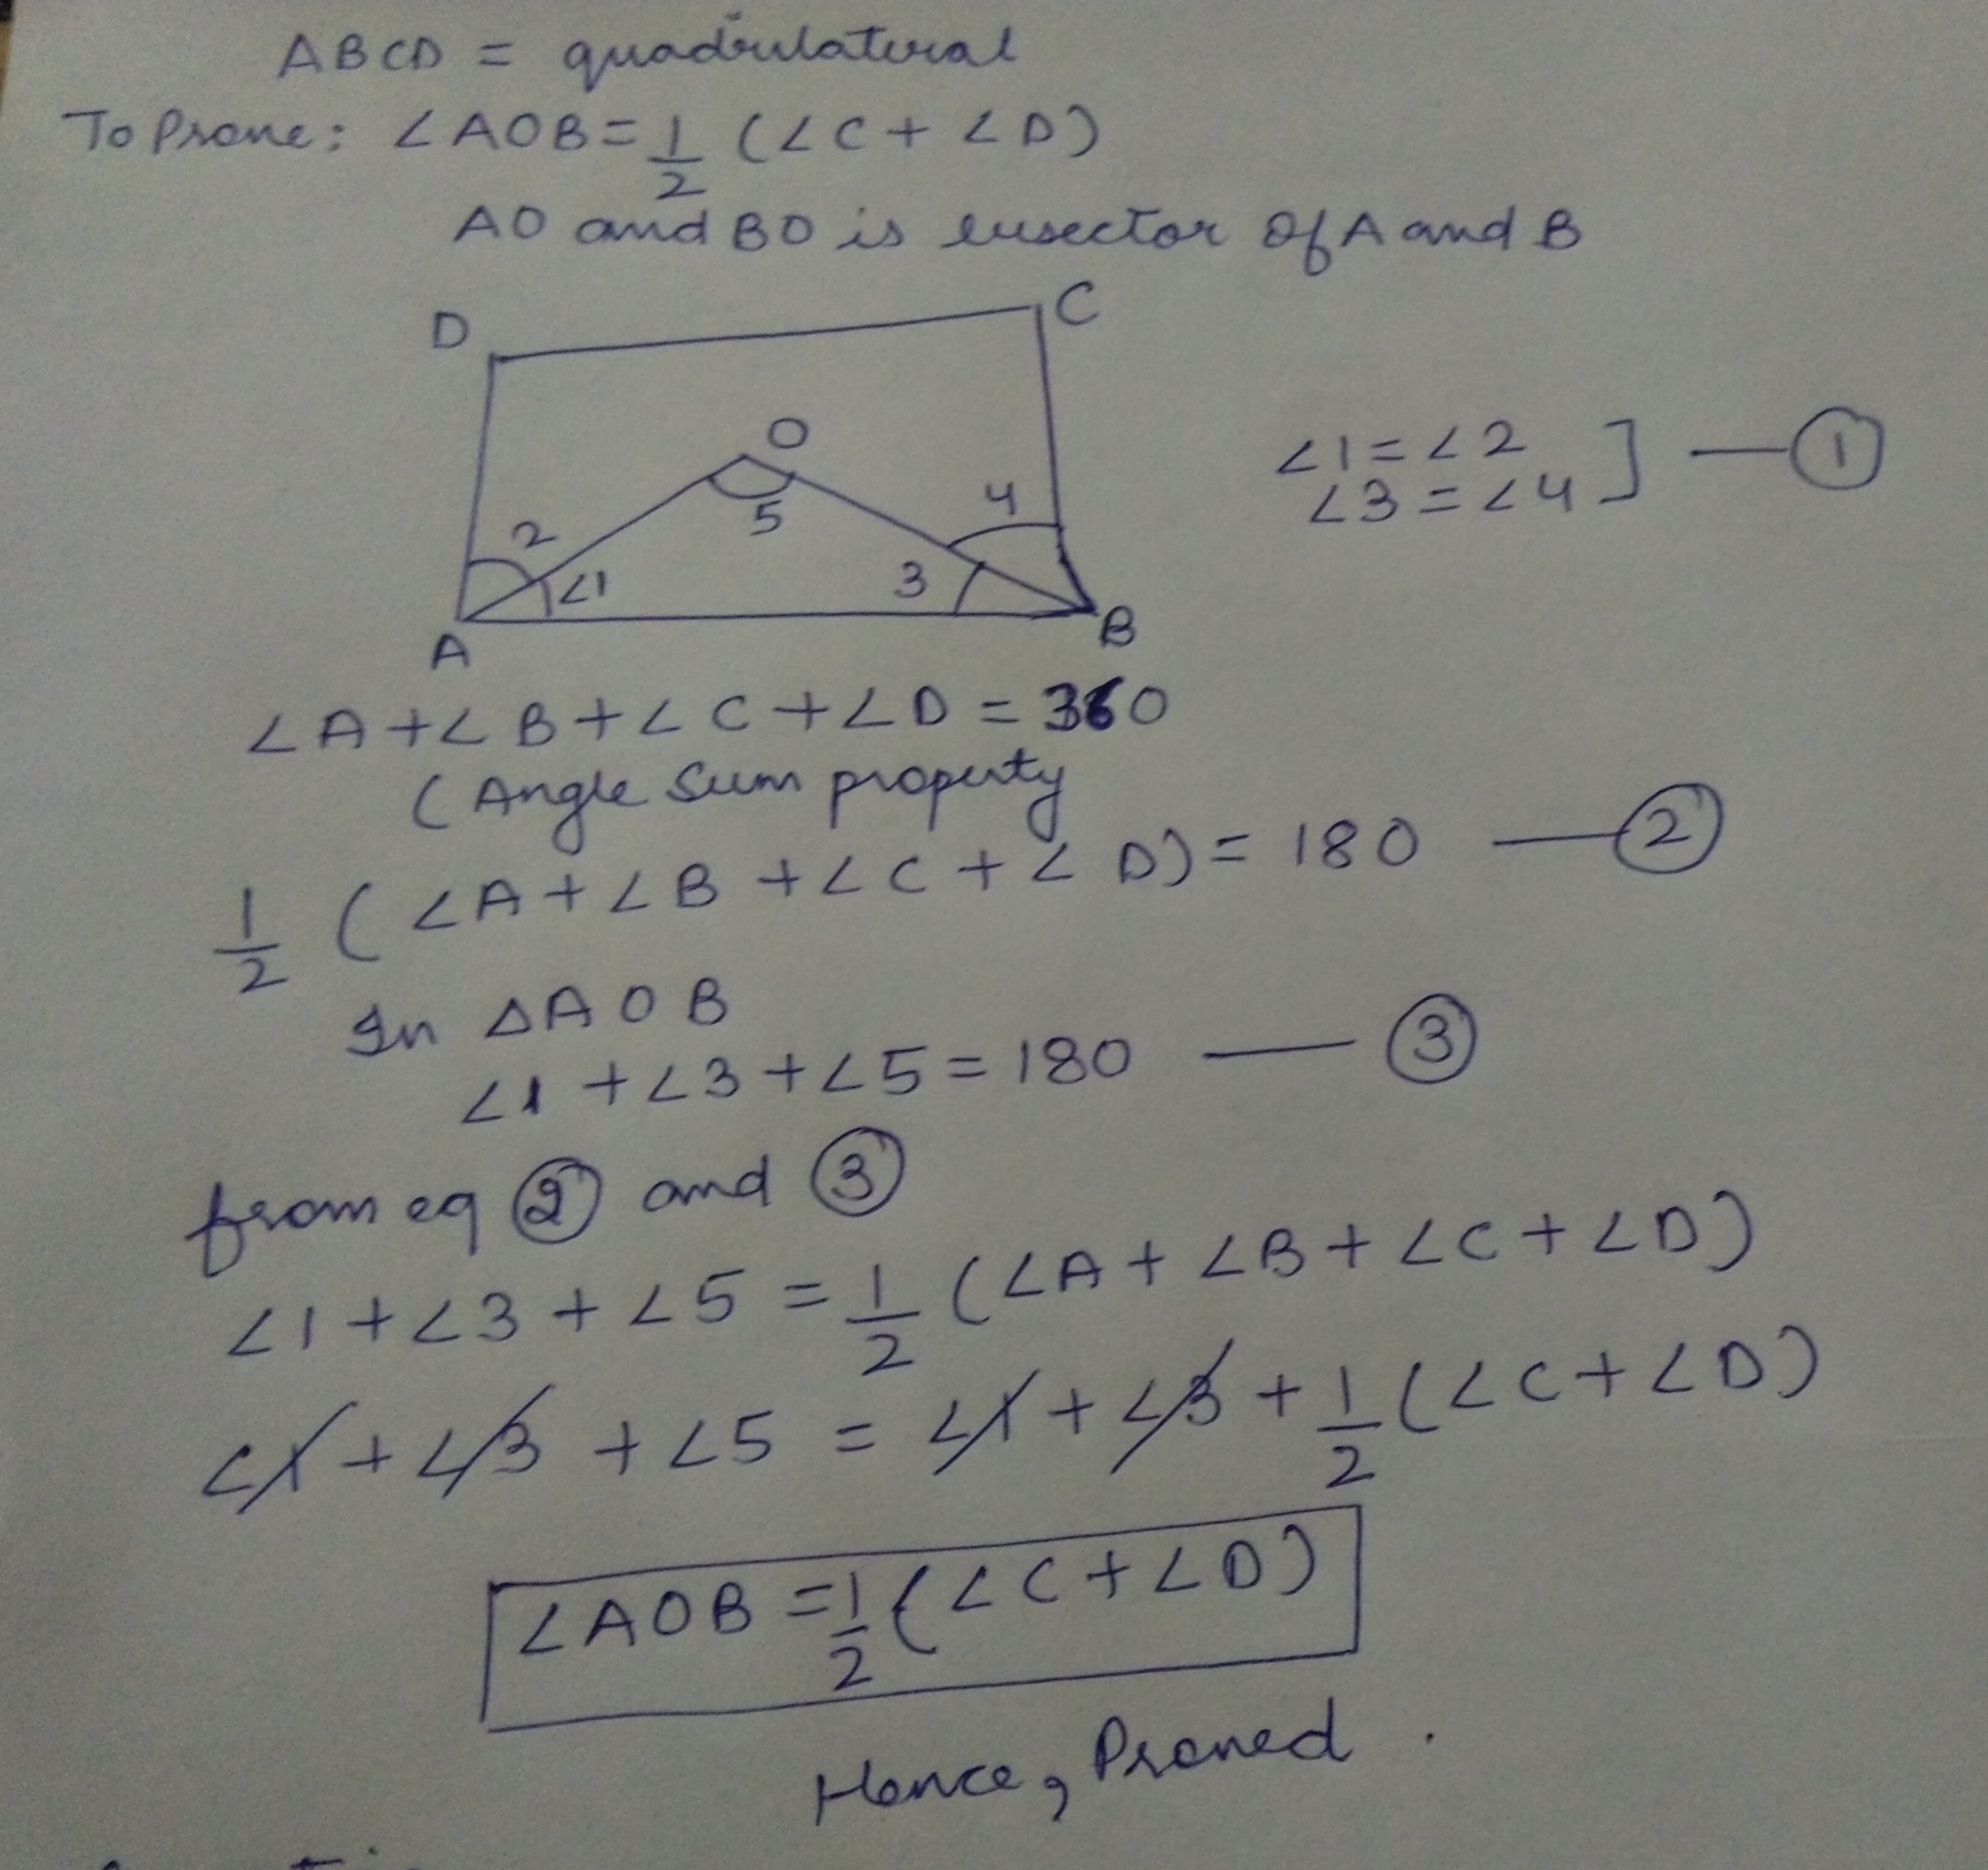 In A Quadrilateral Abcd Ao And Bo Are Bisectors Of Angle A And Angle B Respectively Prove That Aob 12 C D